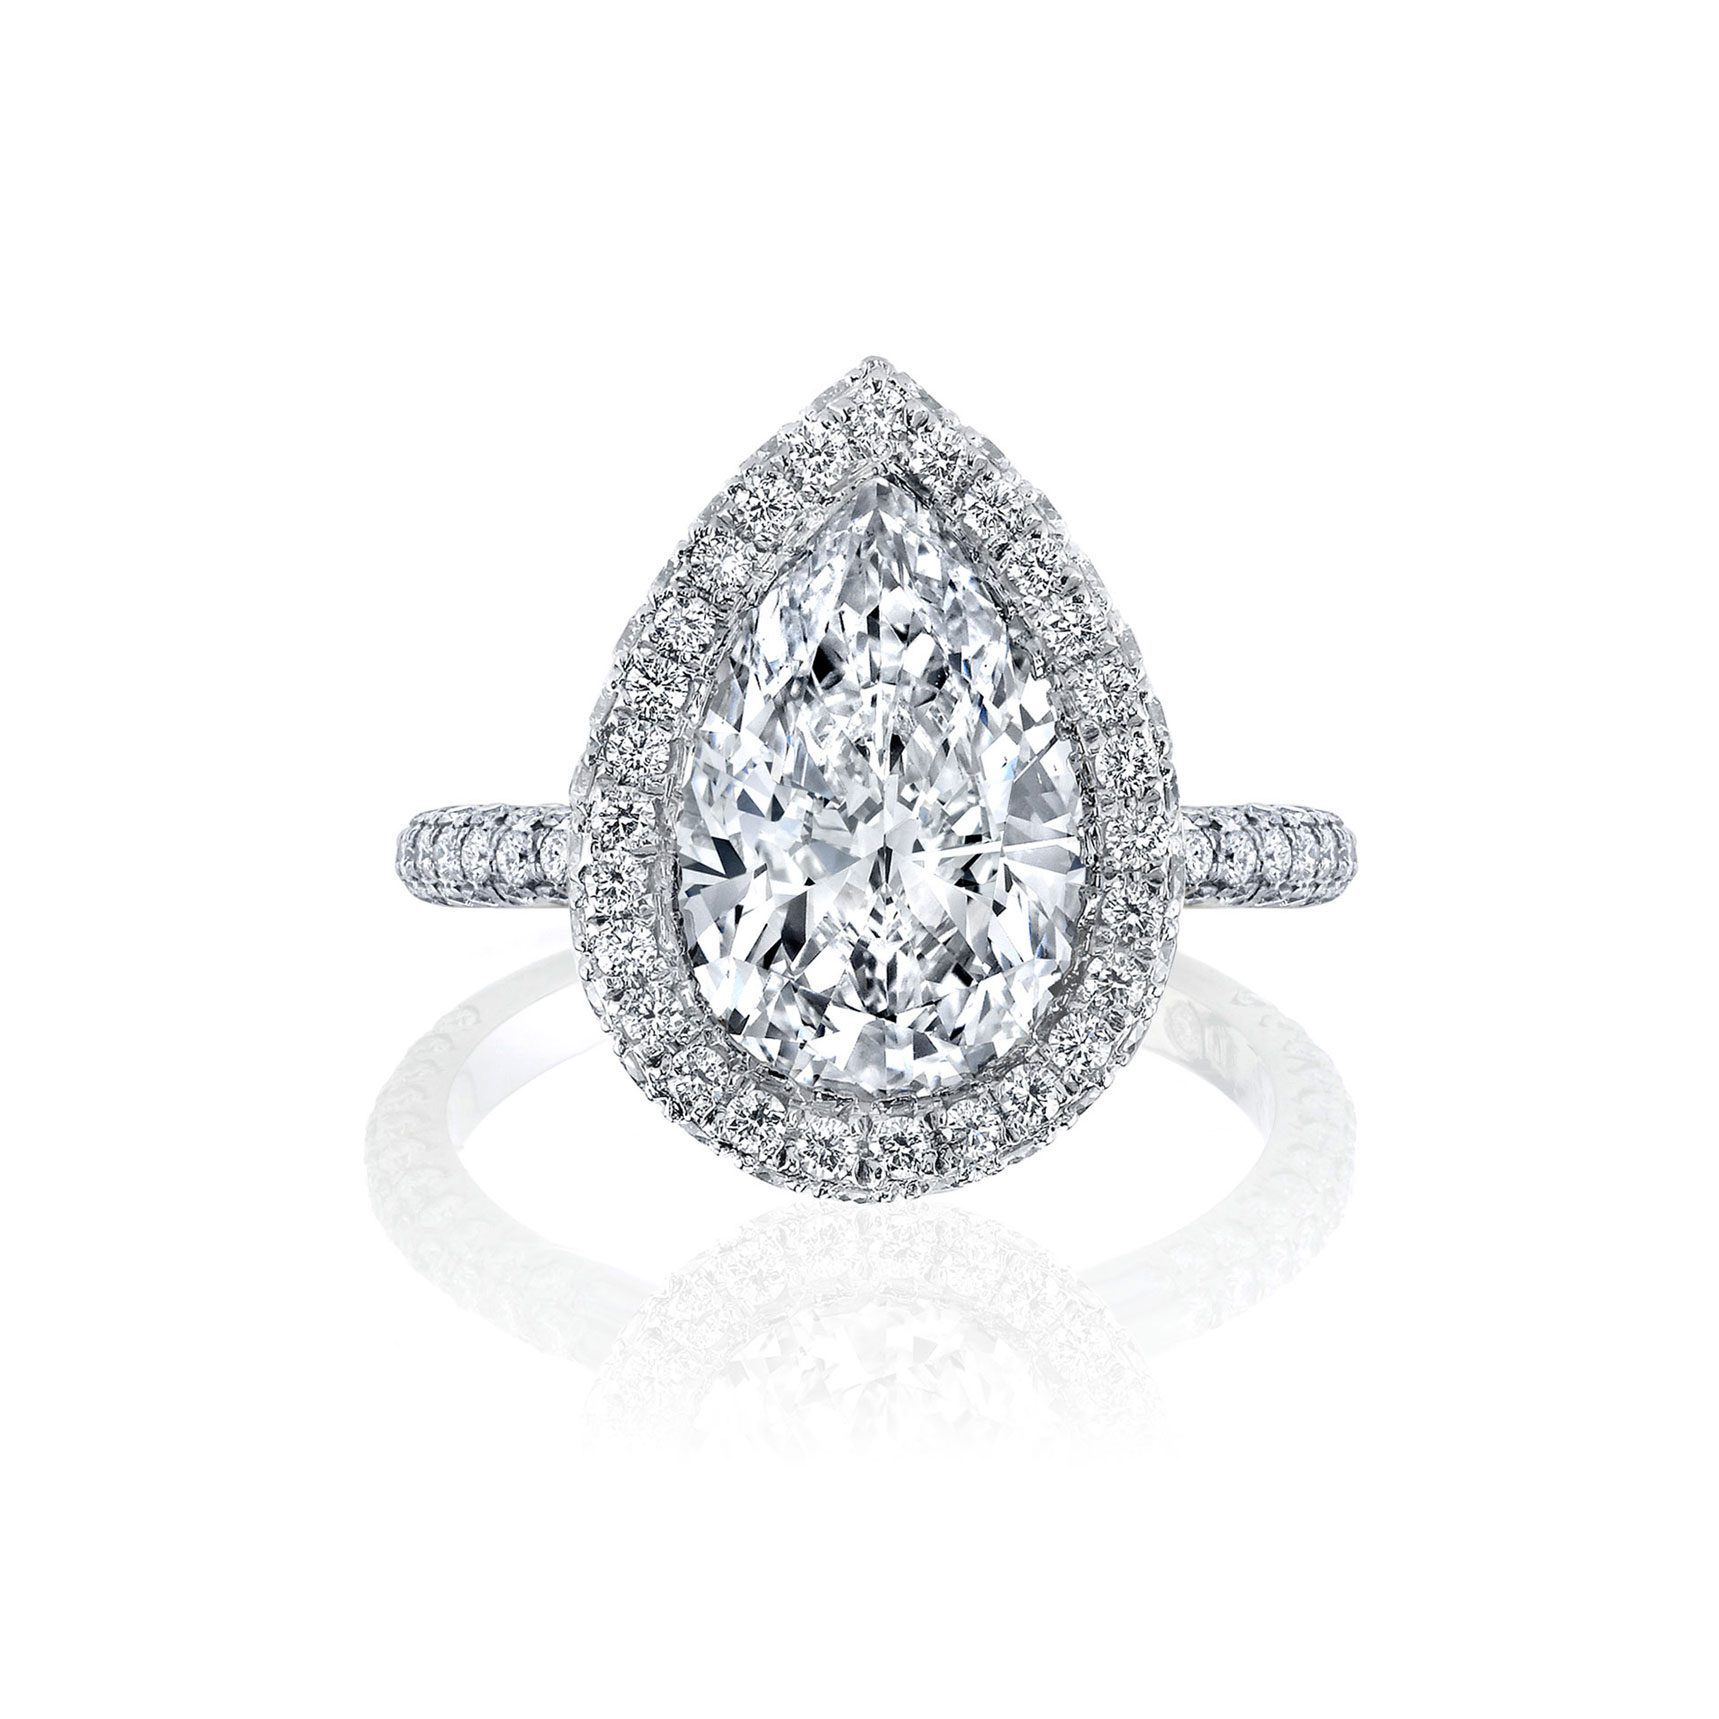 Jacqueline Seamless Halo® Engagement Ring with Lab Grown Pear Cut Diamond in 18k white gold